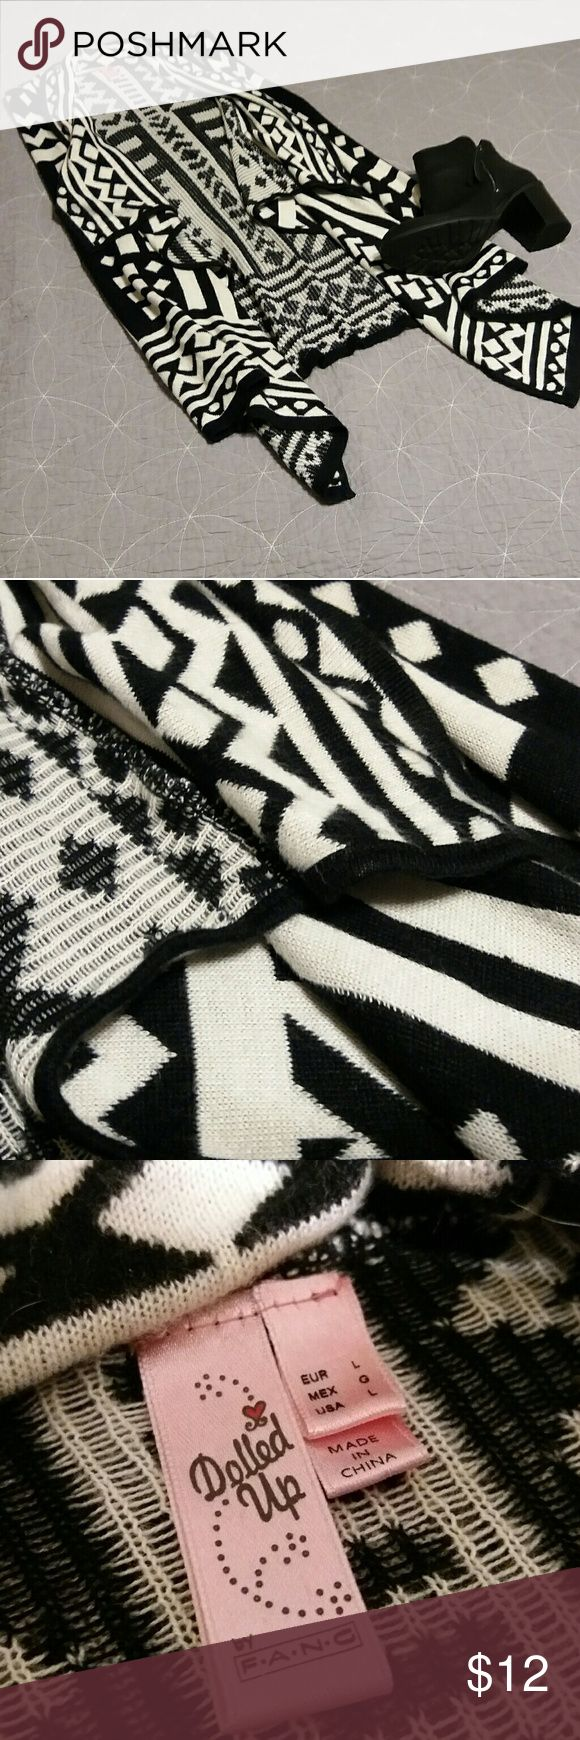 Vest Black and white vest with an Aztec pattern.  Made out of sweater material.  Excellent used condition.  - Please note that this listing is for the vest ONLY. Shoes not included. Dolled Up Jackets & Coats Vests